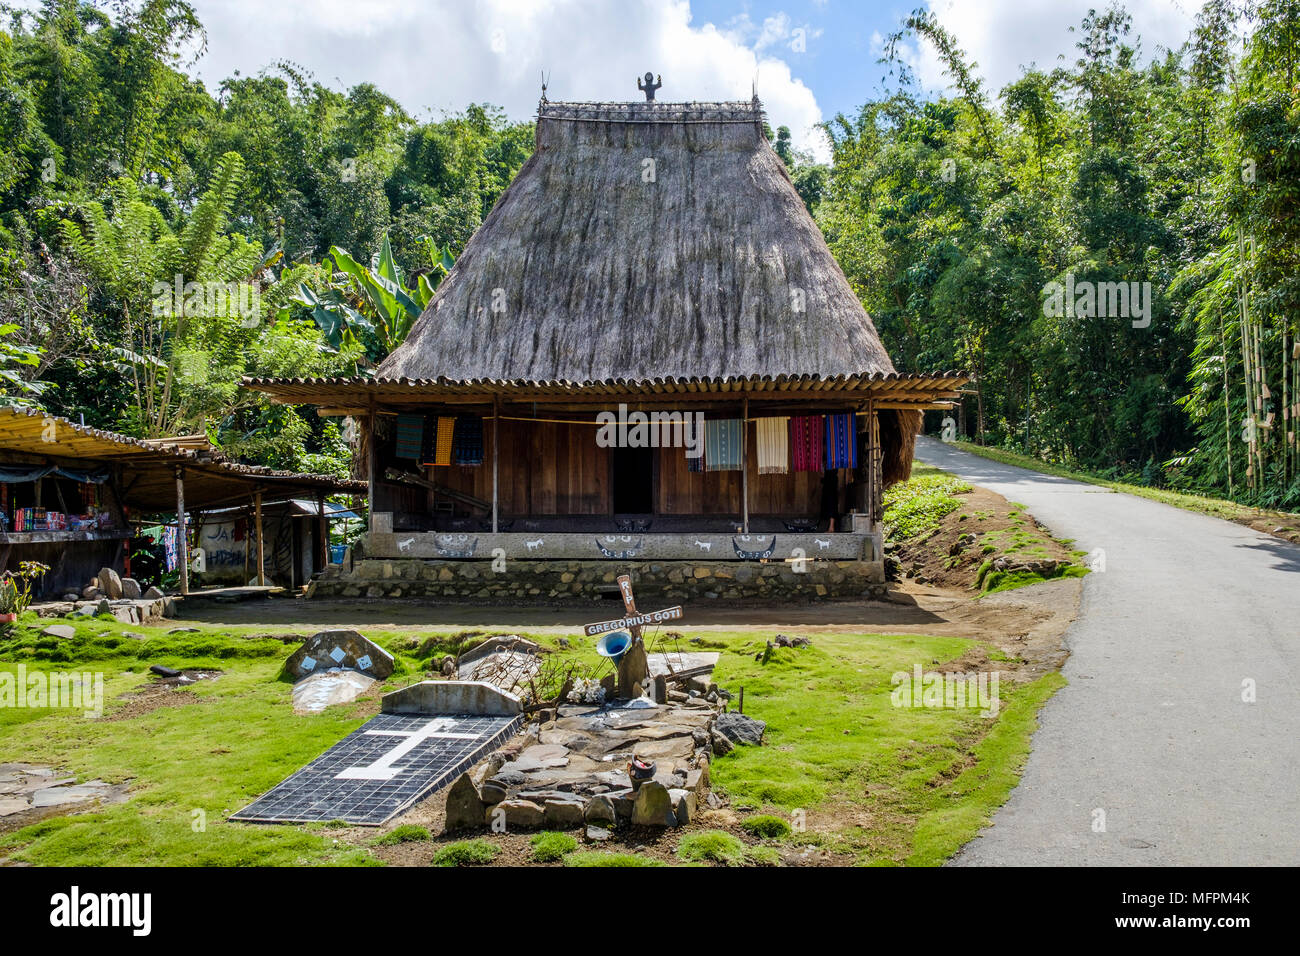 Catholic tombs in front of traditional house in Bena village, Ngada District, Flores Island, Indonesia. - Stock Image